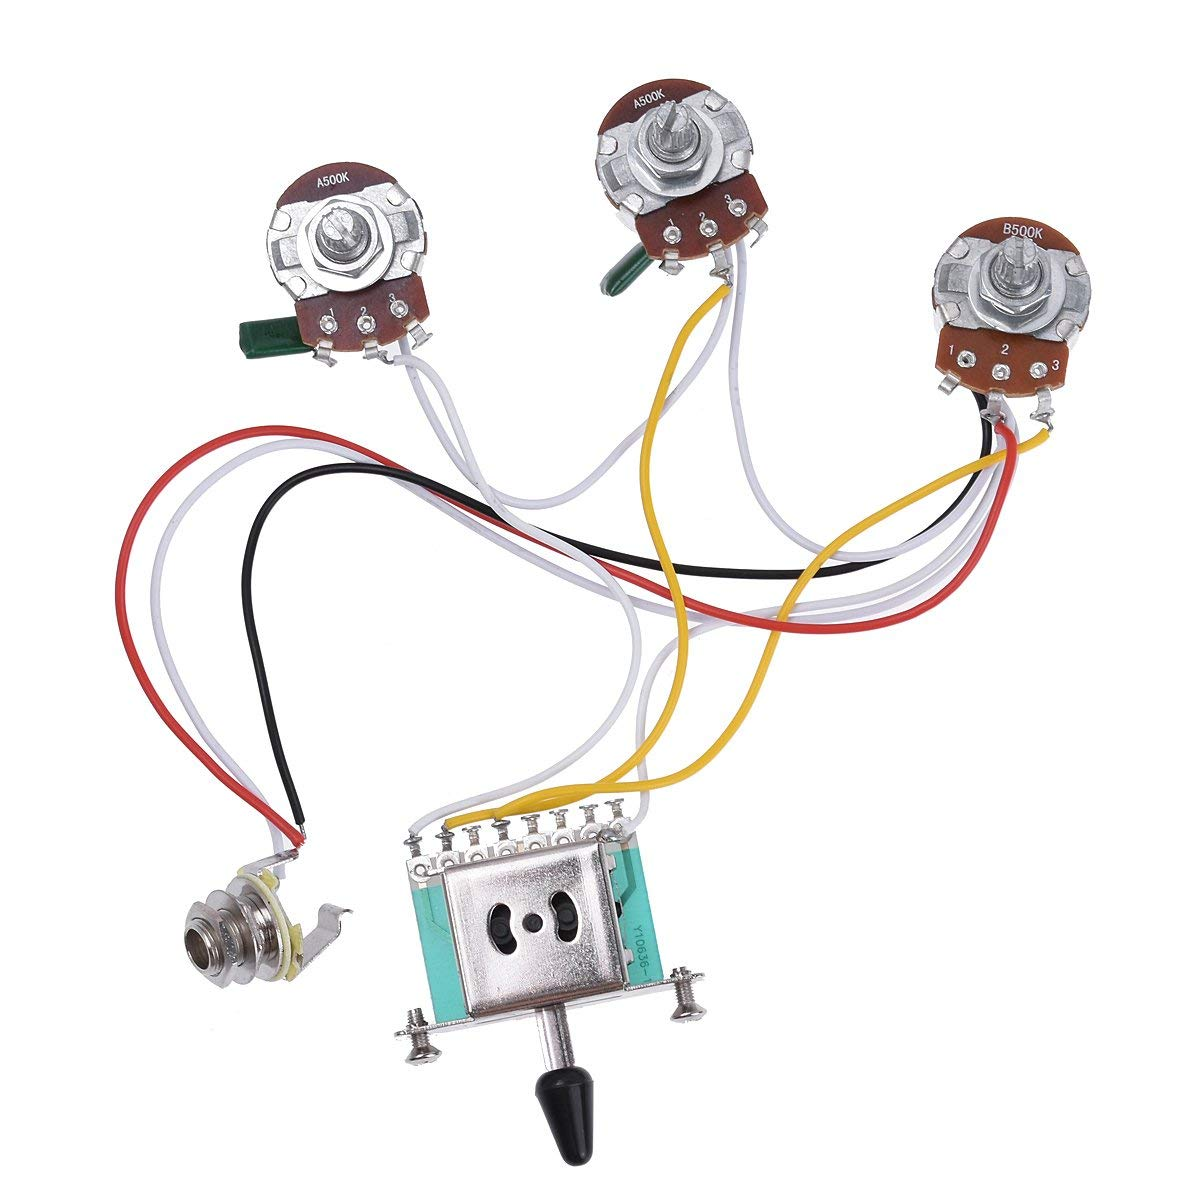 Cheap Strat Wiring Find Deals On Line At Alibabacom Stratocaster Diagram 500k Pots Get Quotations Electric Guitar Harness Prewired Kit For Parts 5 Way Toggle Switch 2t1v